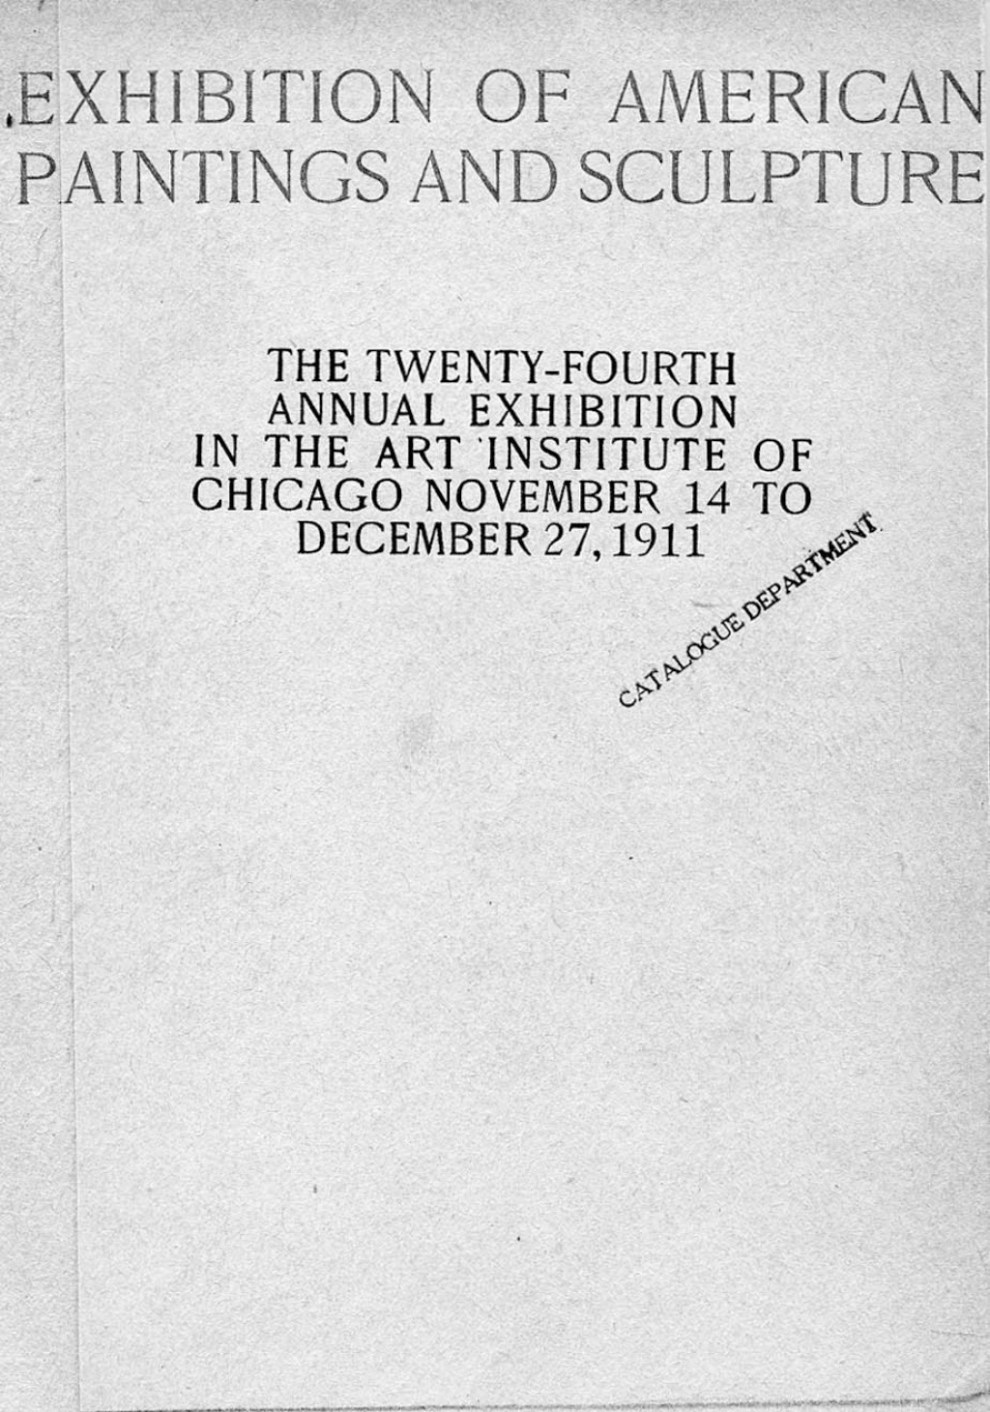 "1911 The Art Institute of Chicago, Chicago, IL, ""The Twenty-Fourth Annual Exhibition of American Paintings and Sculpture"", November 14 - December 27"